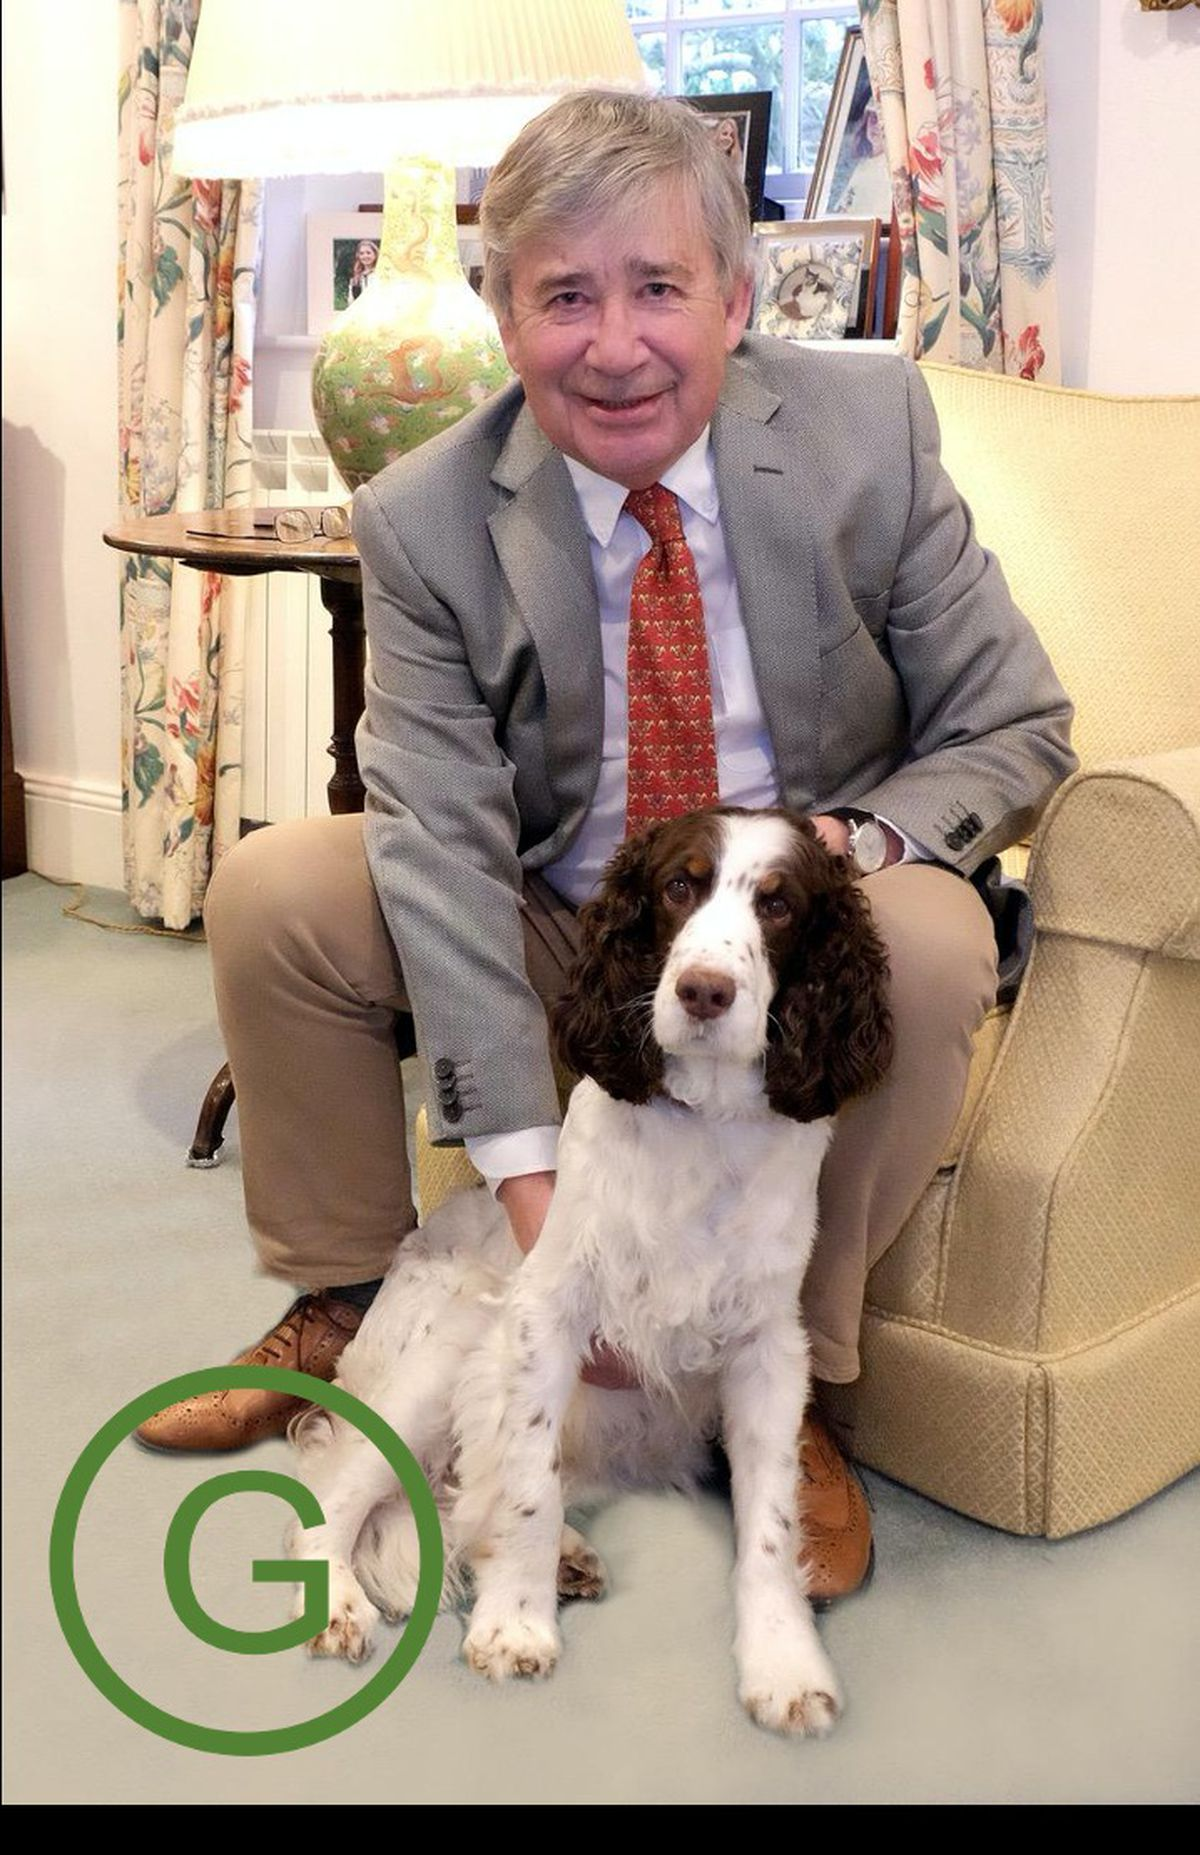 Deputy Dyke's election manifesto picture with his springer spaniel, Rosie, who sadly died recently.